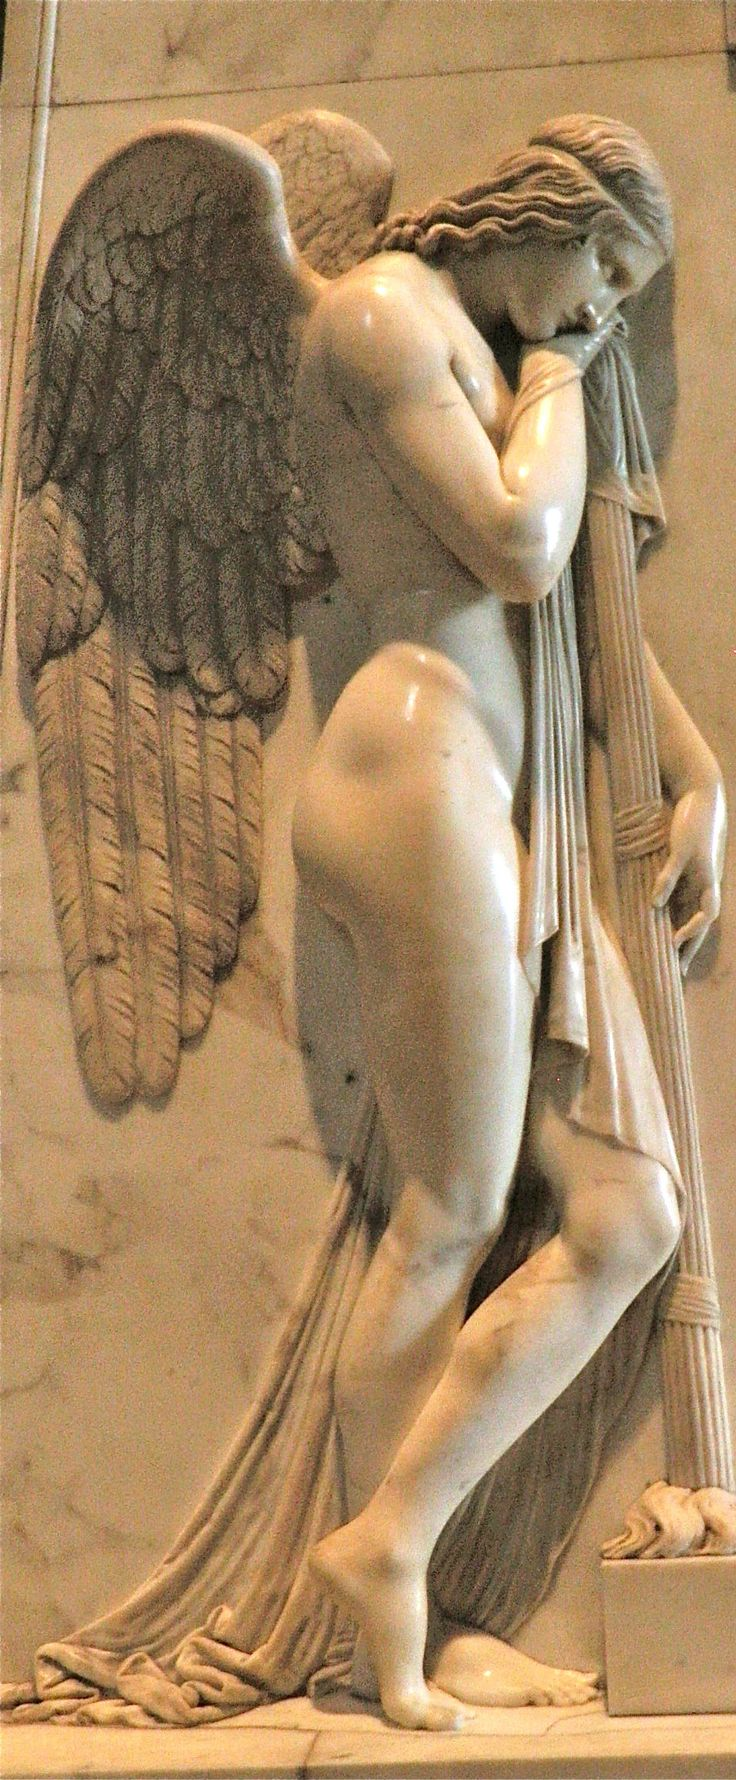 Beautiful Angel : Vatican Rome. Find wonderful tours of Italy and adventure holidays in Italy. Visit us for inspiration, bargains and leading travel companies.